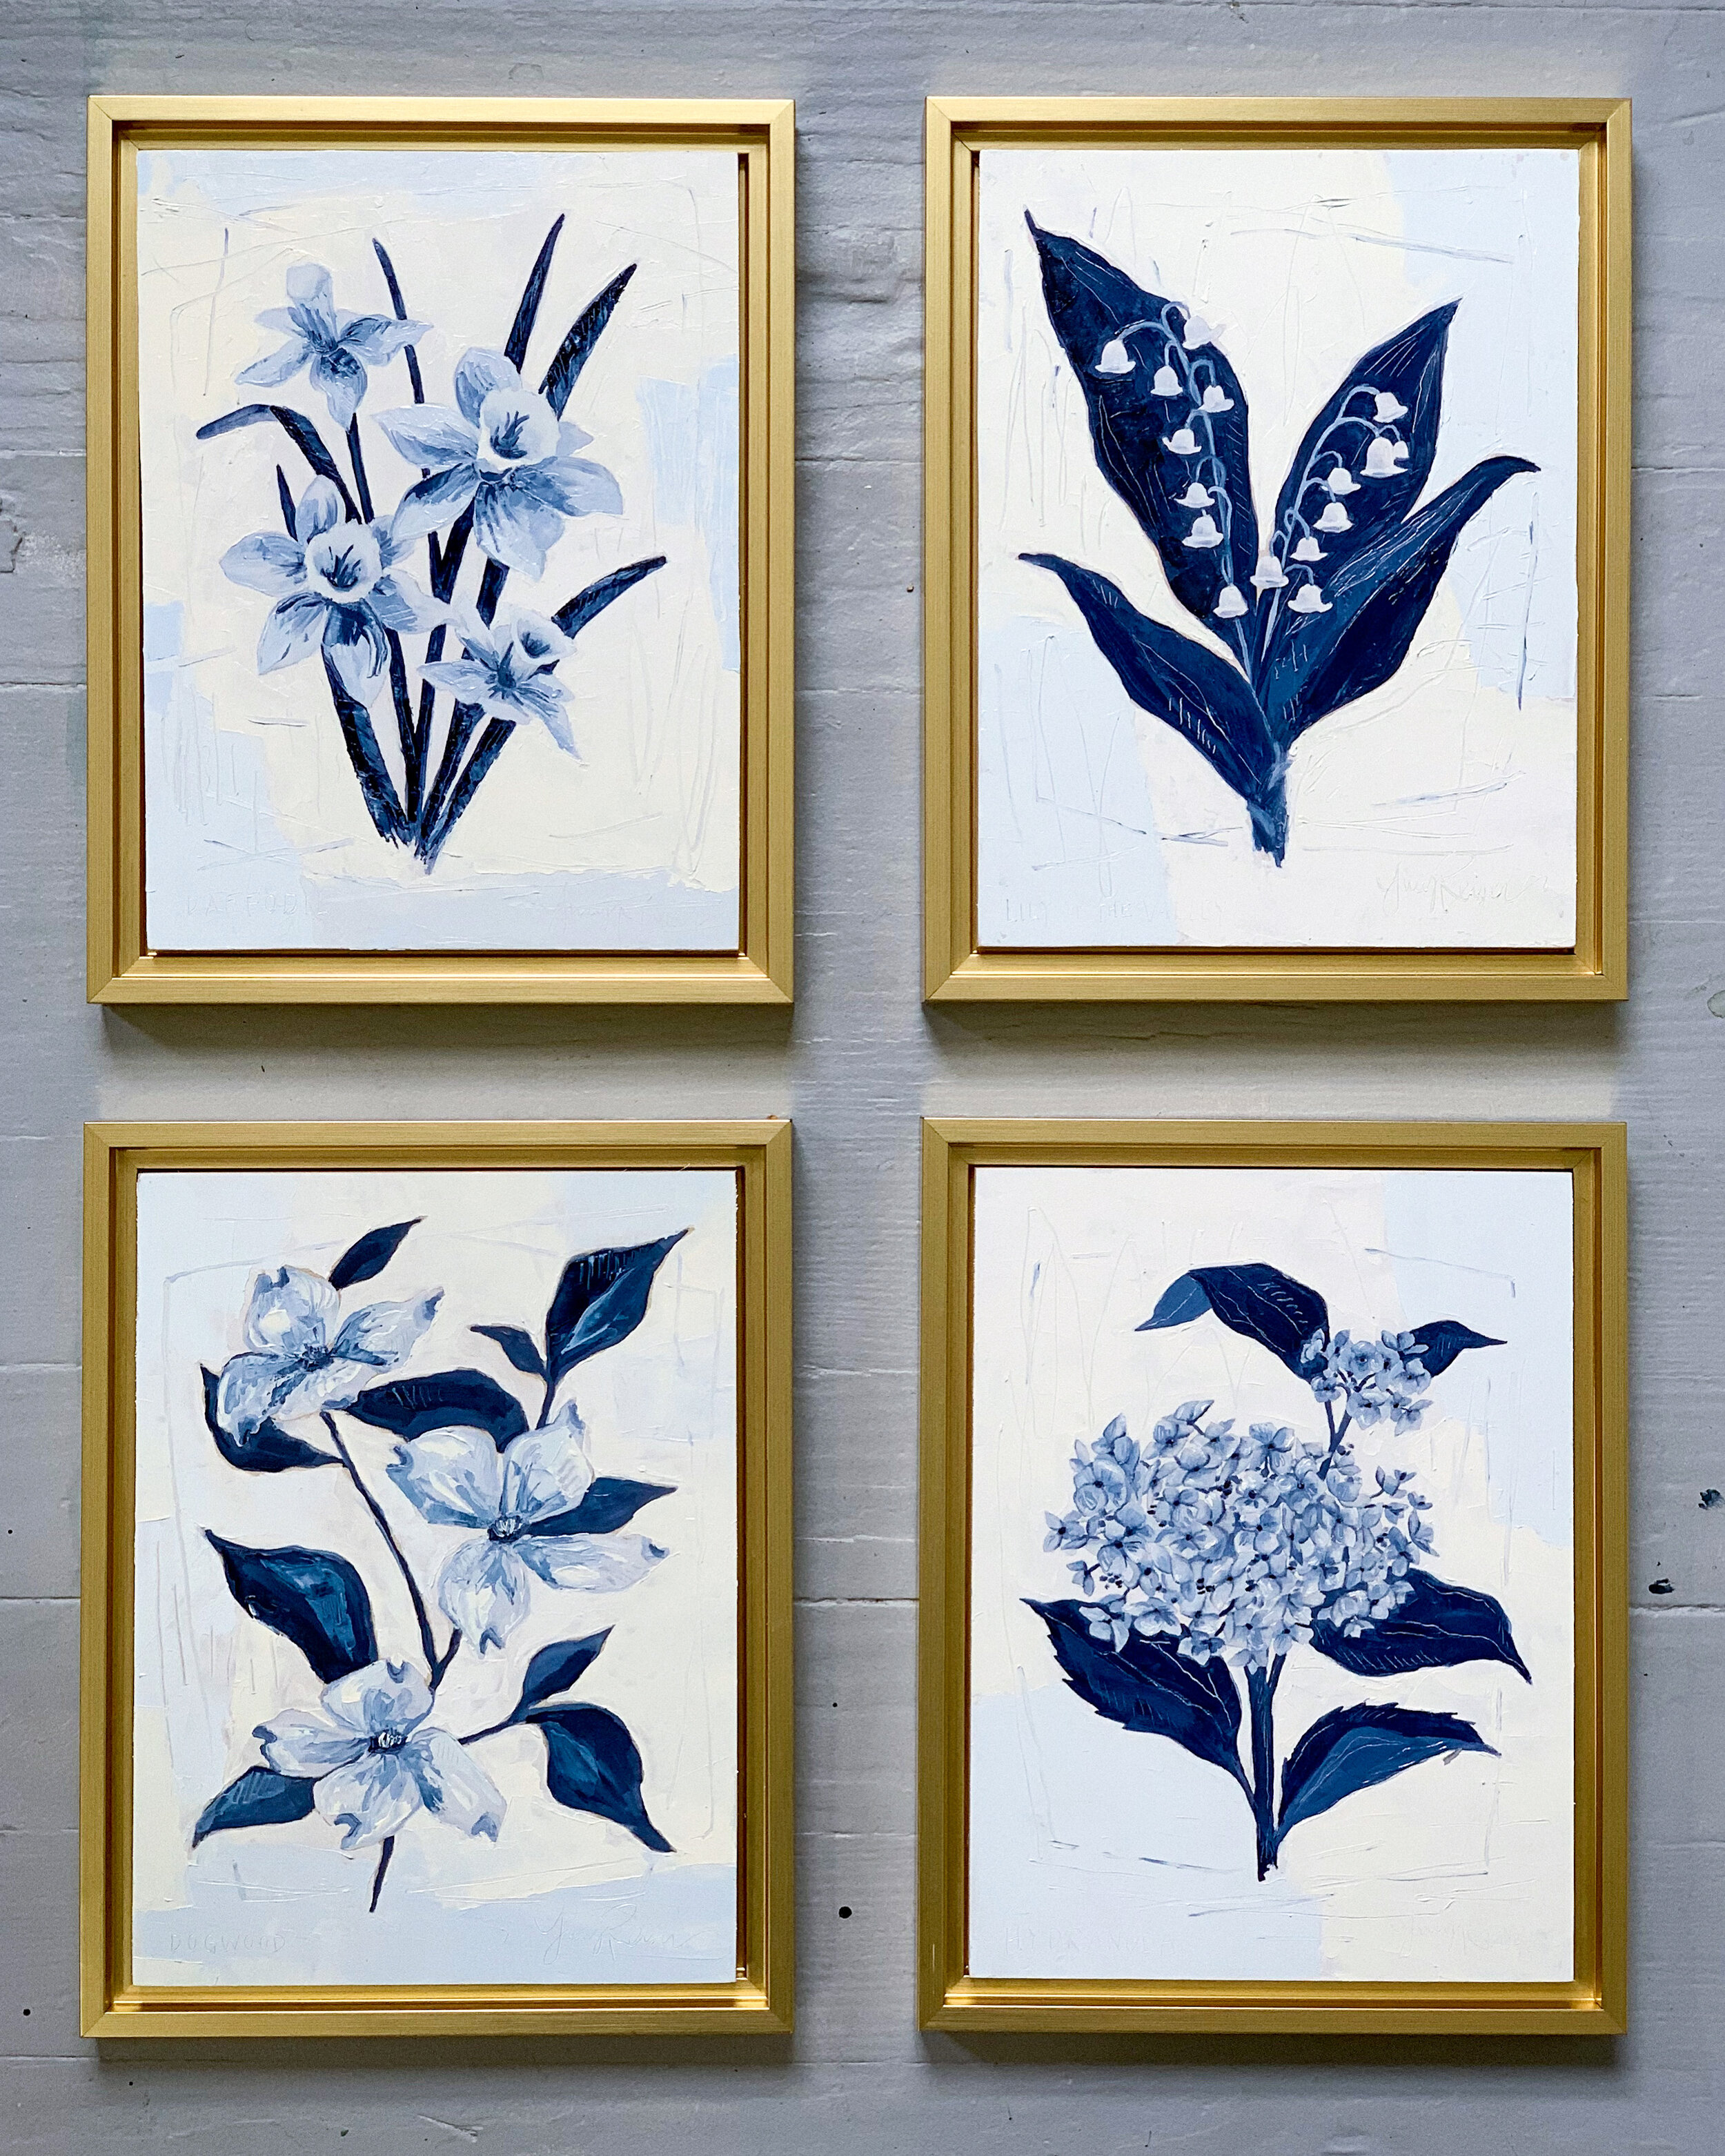 Shared the Blue Botanical collection with the world!